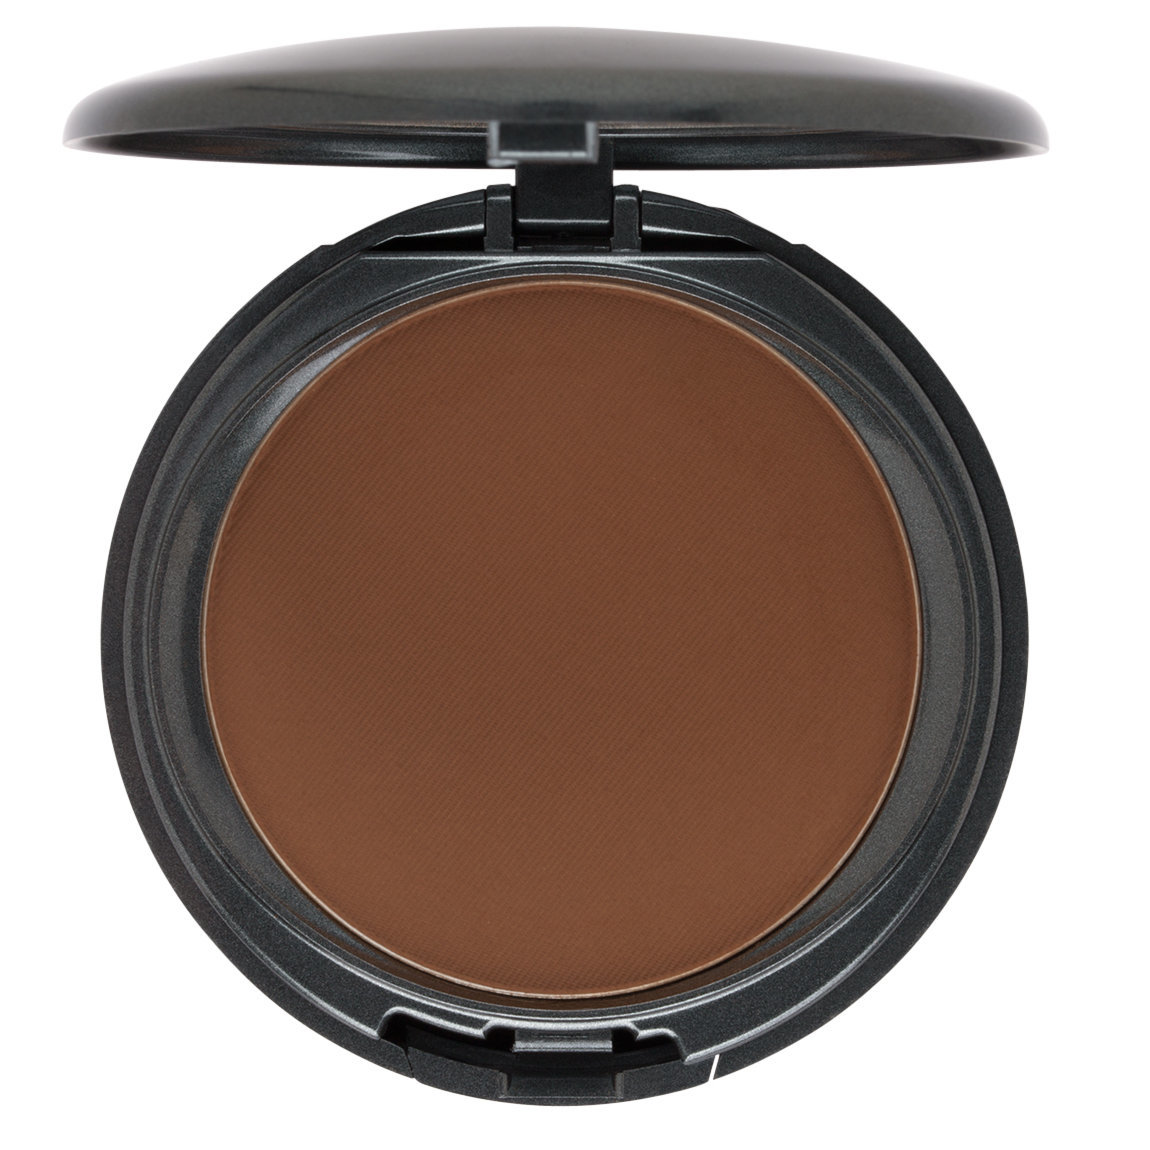 COVER | FX Pressed Mineral Foundation N120 alternative view 1 - product swatch.